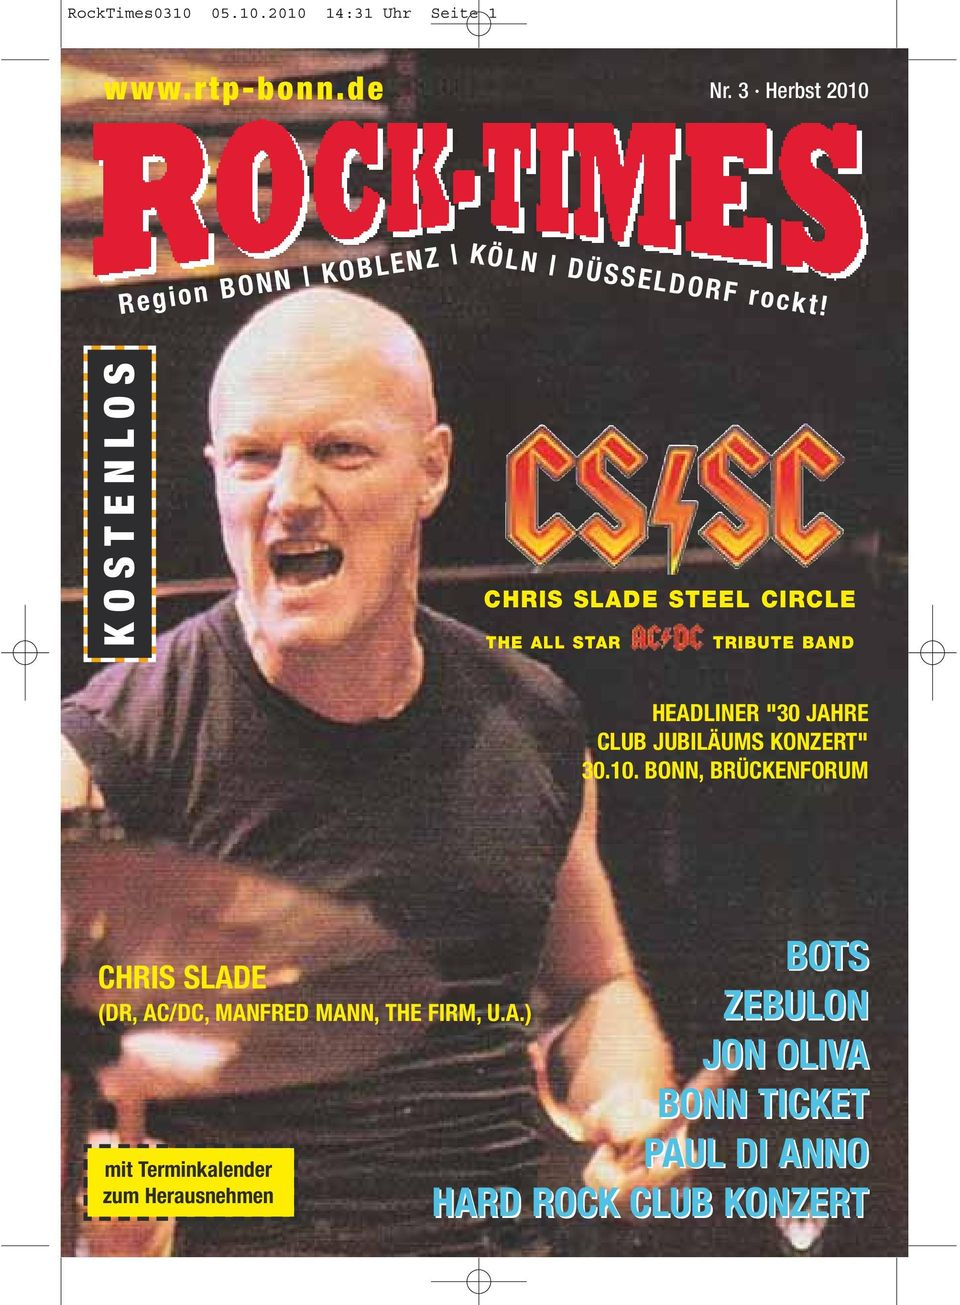 "KOSTENLOS CHRIS SLADE STEEL CIRCLE THE ALL STAR TRIBUTE BAND HEADLINER ""30 JAHRE CLUB JUBILÄUMS"